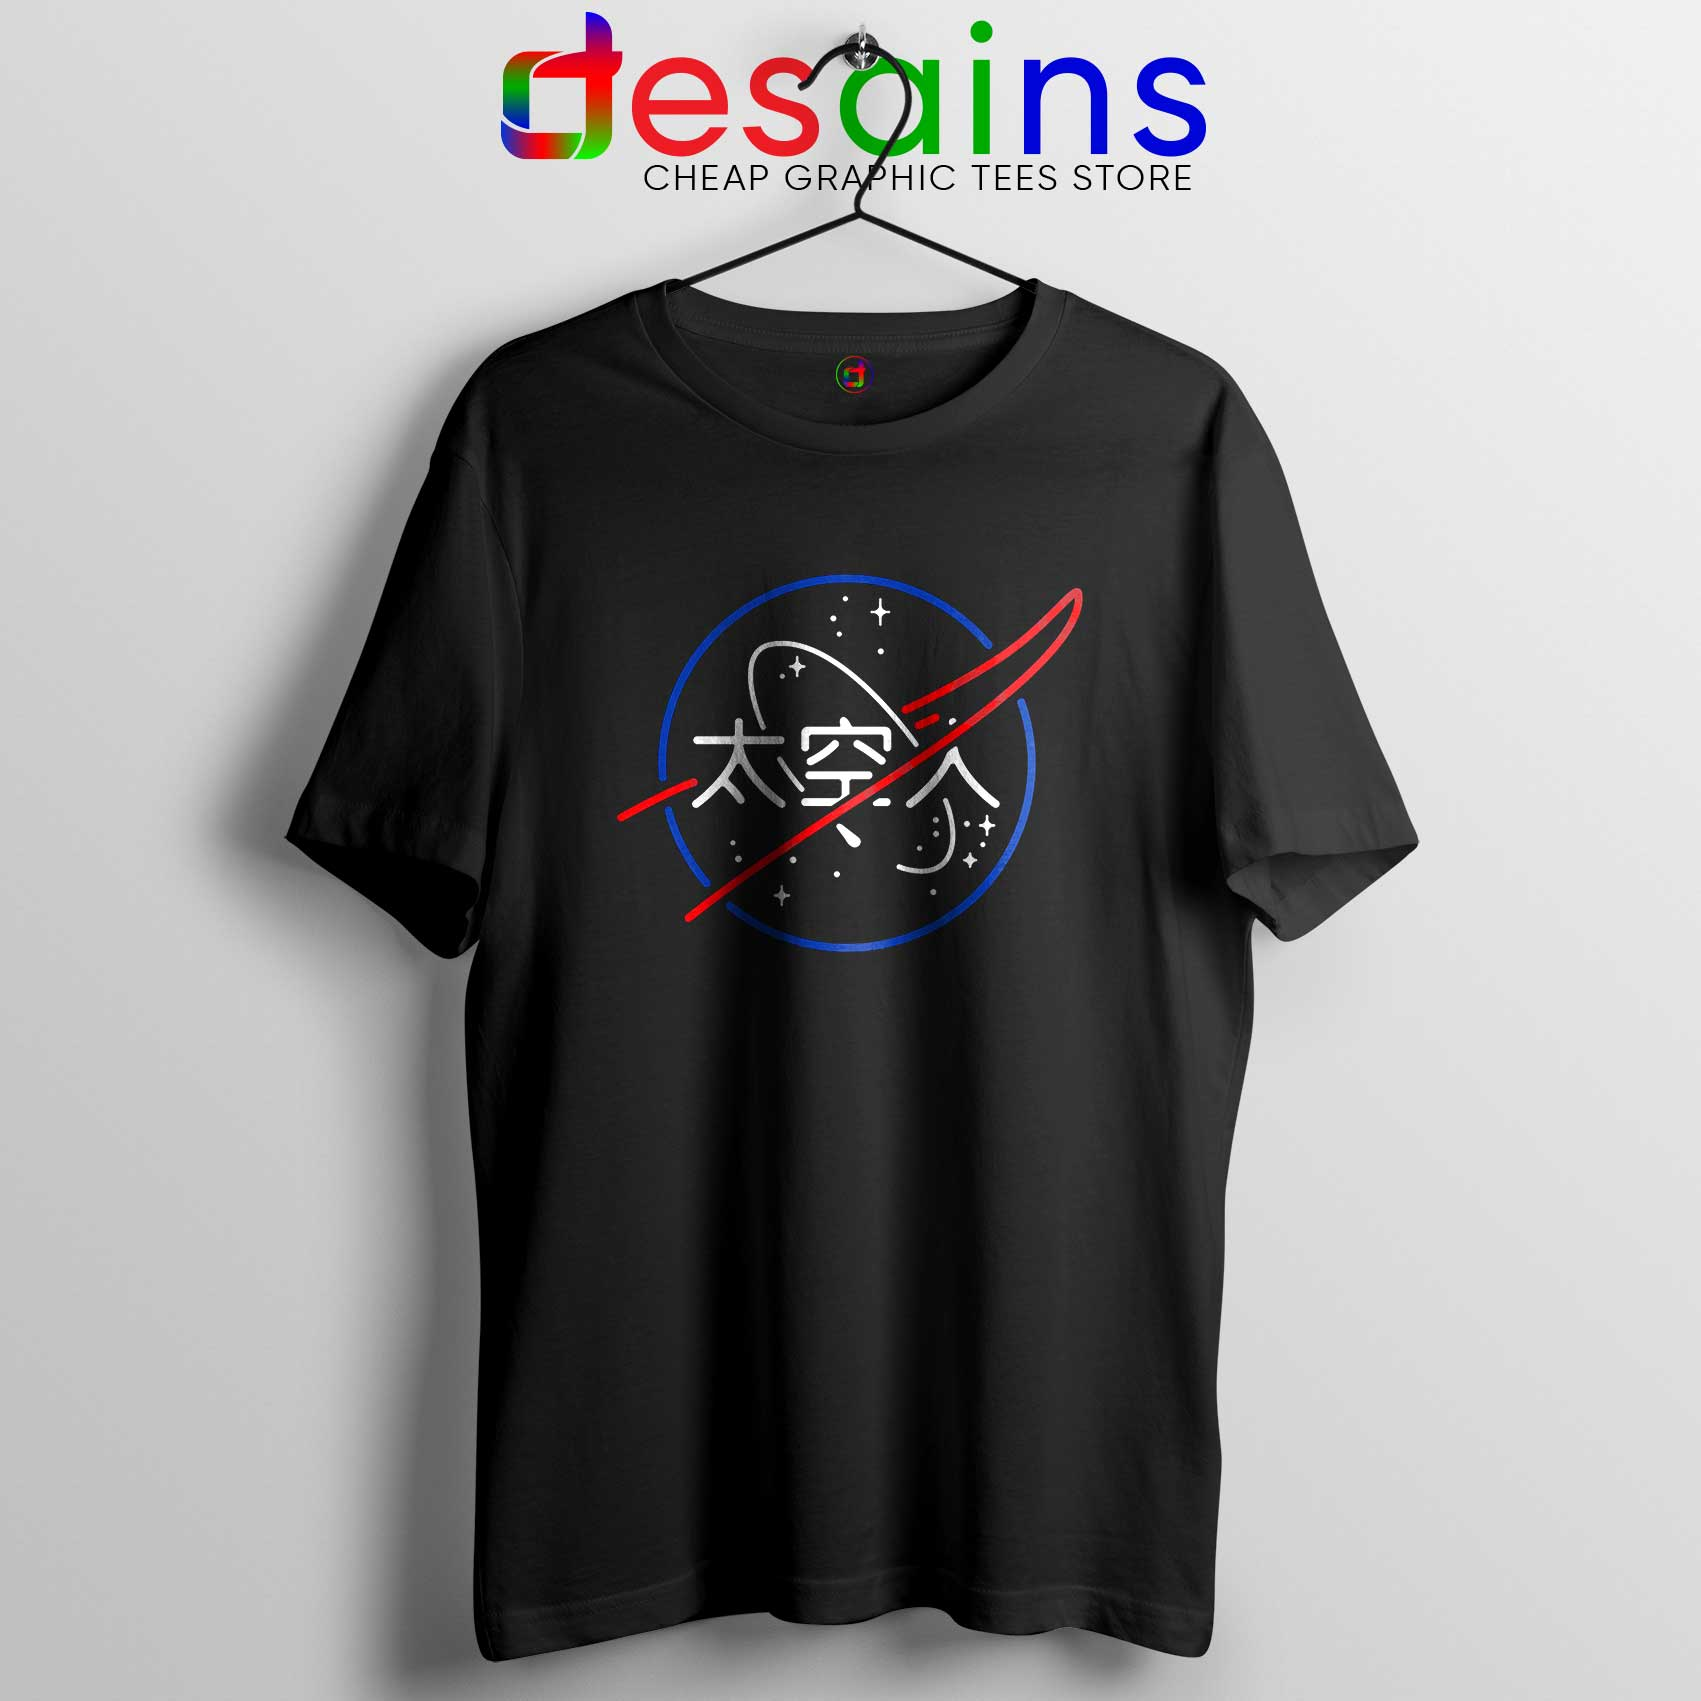 91ec6c70e NASA-Aesthetic-Japanese-Tee-Shirt-Cheap-Size-S-3XL.jpg